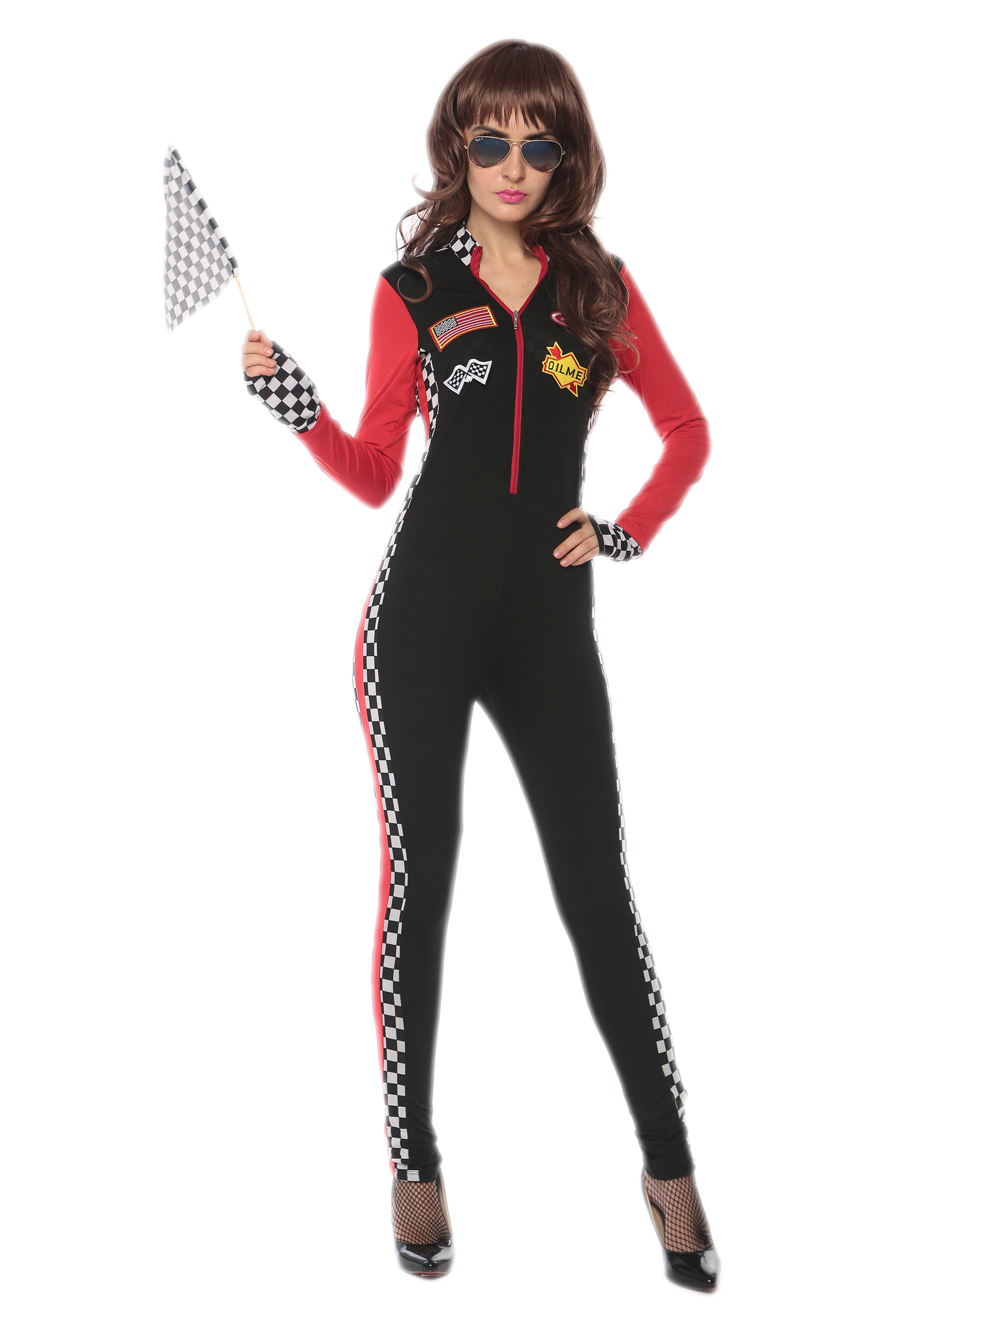 Newest Seductive Sexy Race Girl Jumpsuit 3S1722 Free -7957